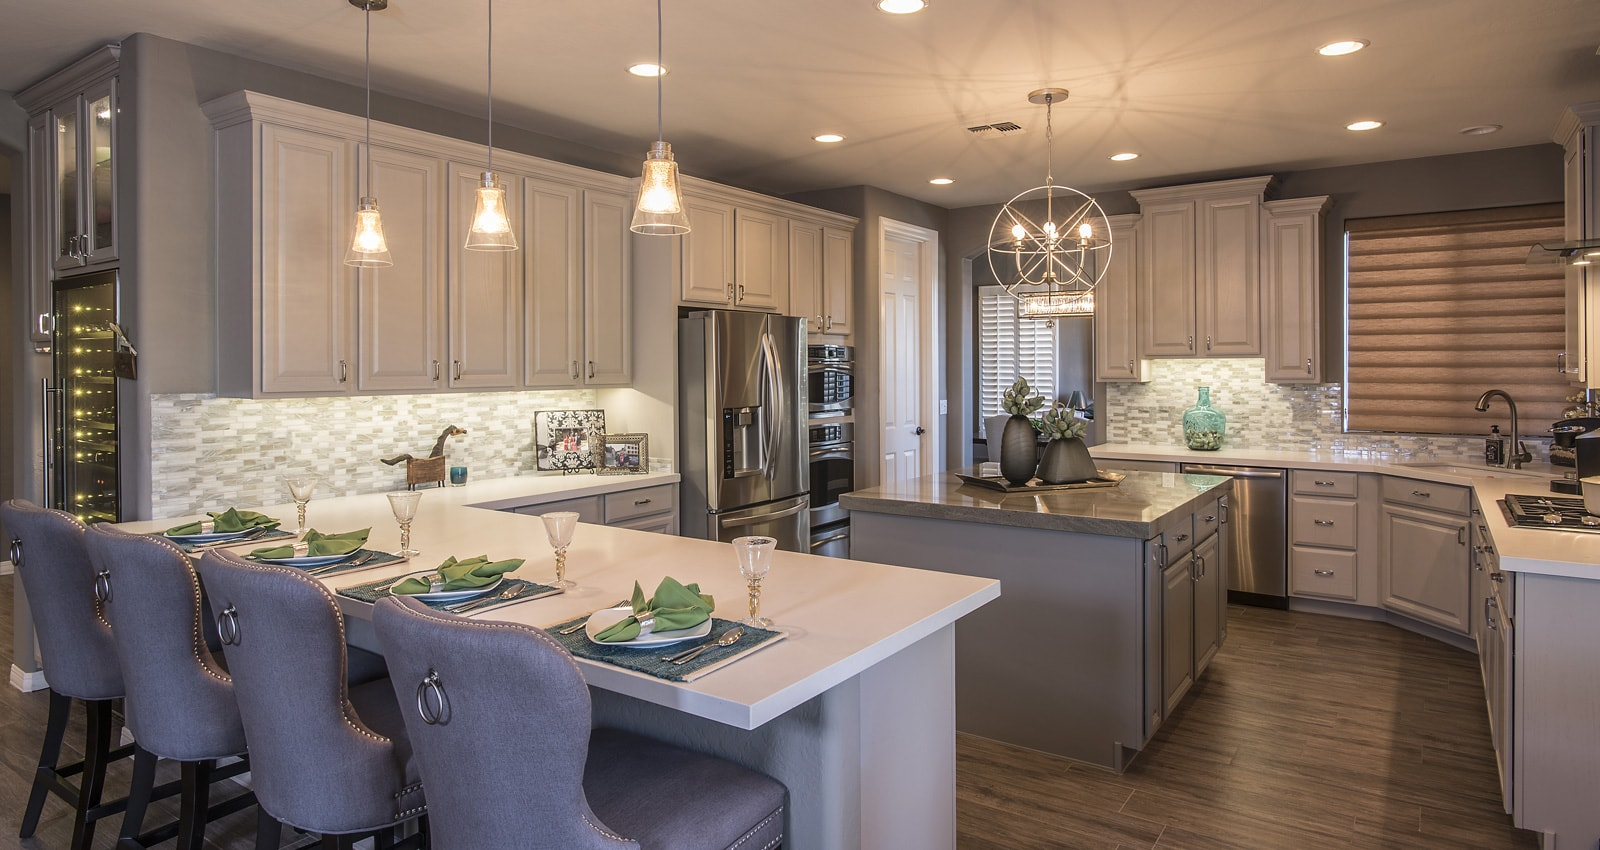 kitchen az cabinets industrial supplies home interior design trends scottsdale phoenix calgary and more